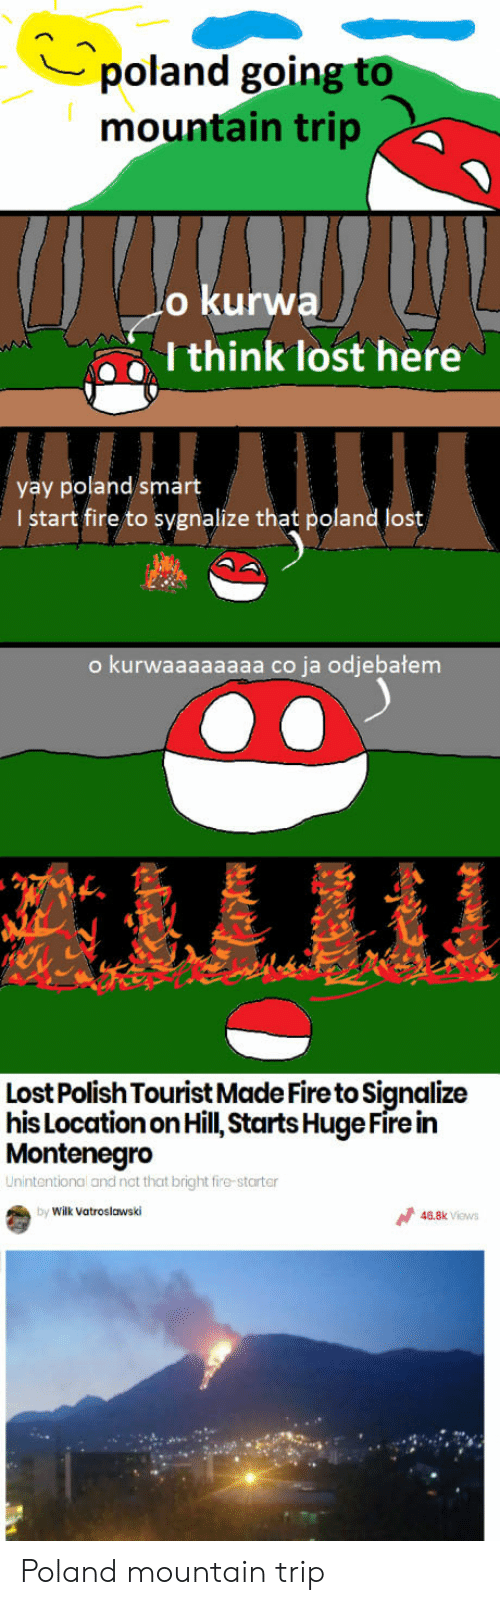 Fire, Lost, and Montenegro: poland going to  mountain trip  o kurwa  I think lost here  yay poland smart  I start fire to sygnalize that poland lost  o kurwaaaaaaaa co ja odjebatem  Lost Polish Tourist Made Fire to Signalize  hisLocationon Hill, Starts Huge Fire in  Montenegro  Unintentional and not that bright fire-starter  by Wilk Vatroslawski  46.8k ViewS Poland mountain trip